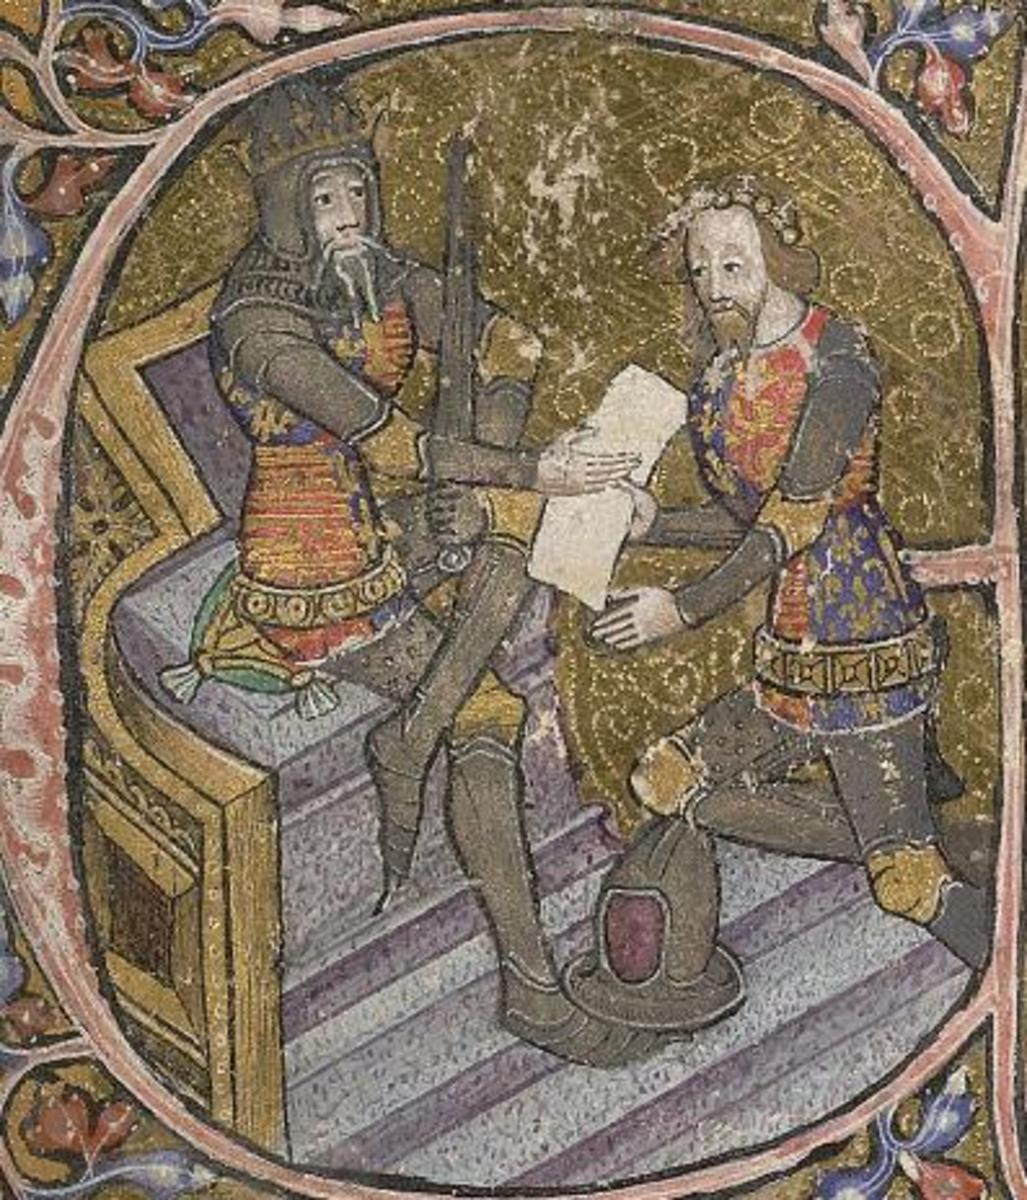 A 14th century illustration showing Edward the Black Prince kneeling in front of his father, Edward III.